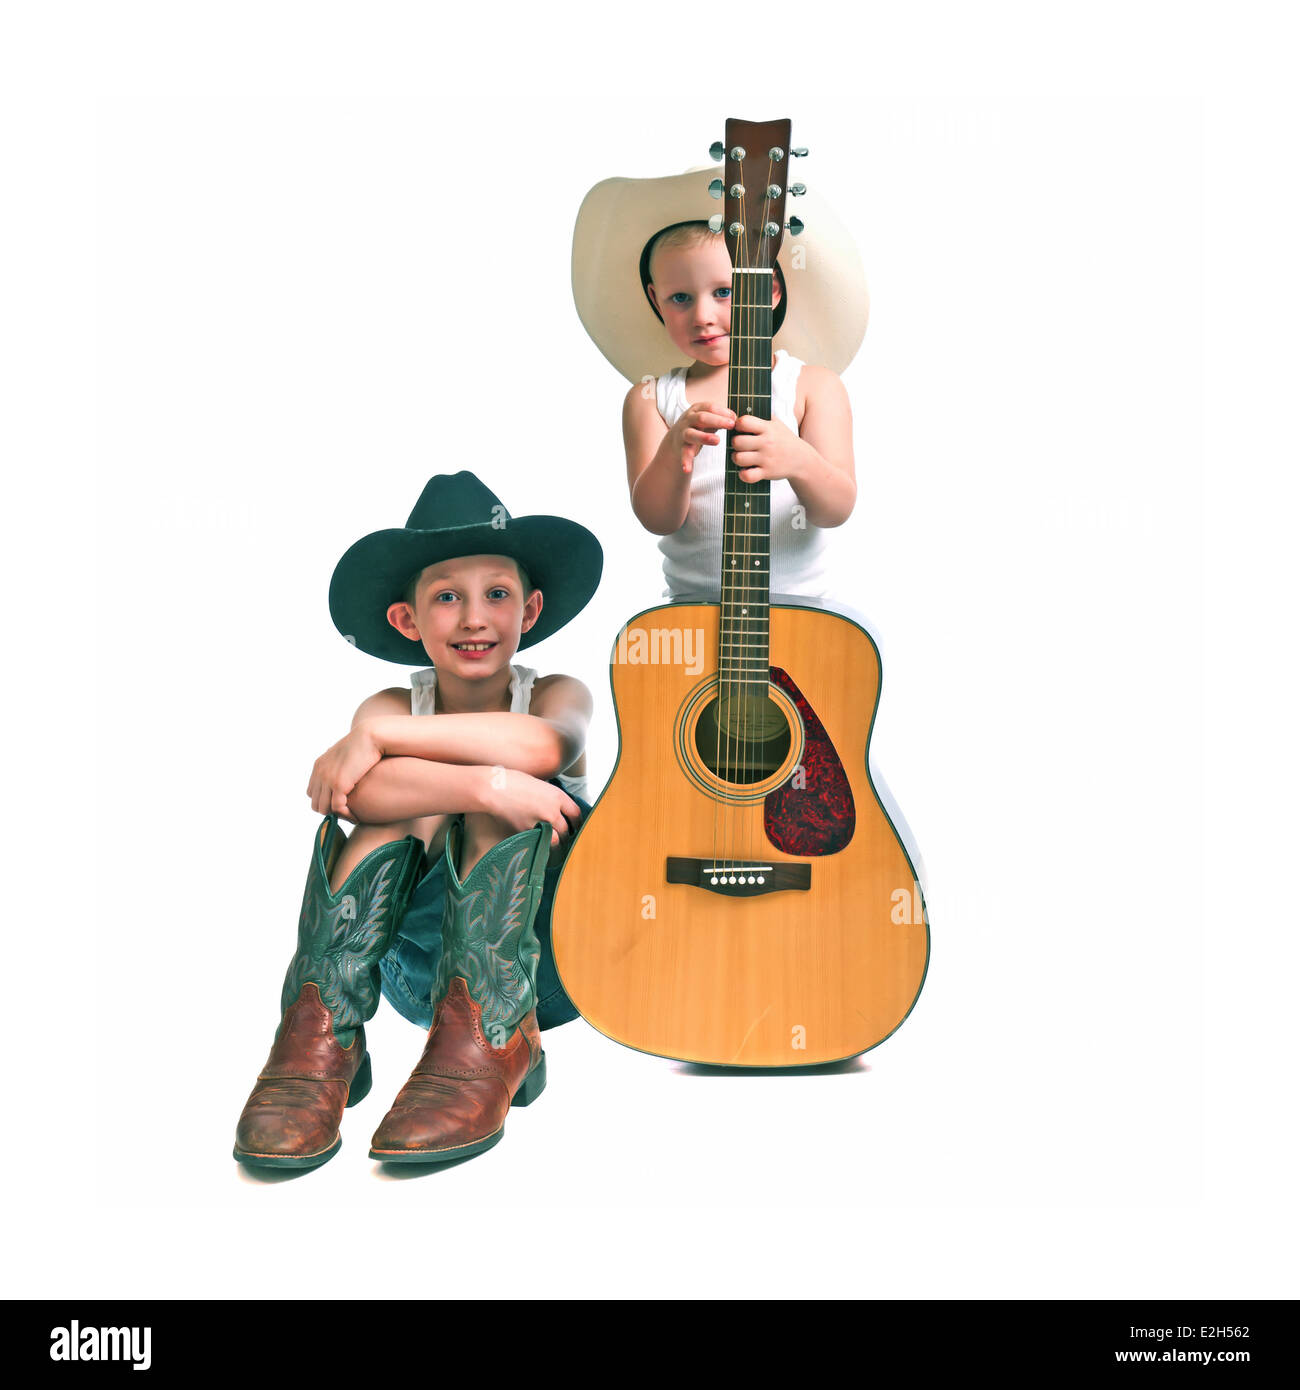 Pre-teen and a pre-schooler with cowboy hats , boots and a guitar, isolated against a white background. - Stock Image